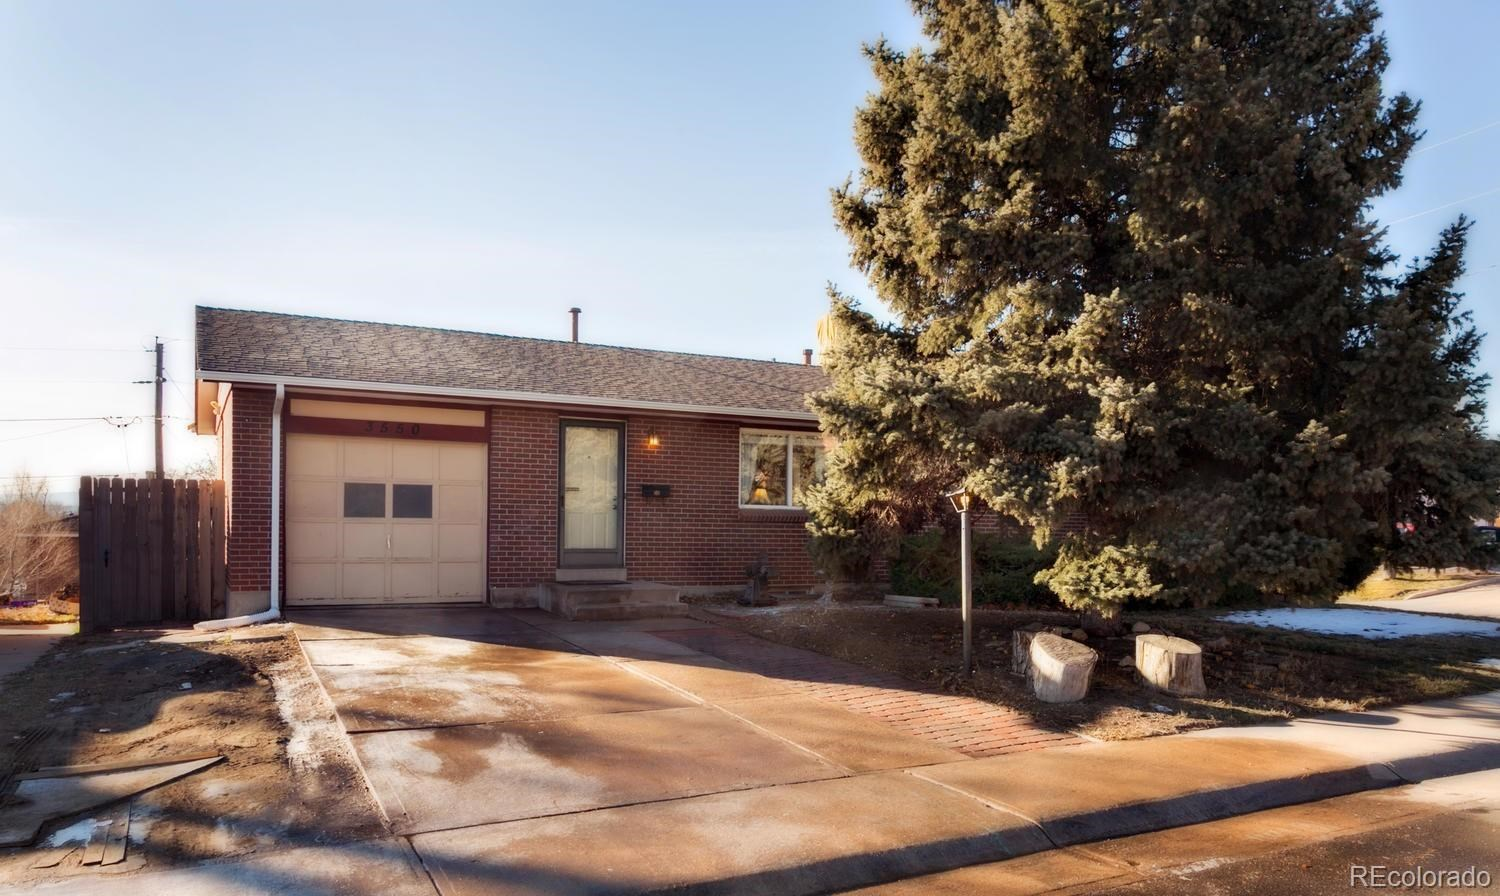 MLS# 1847703 - 1 - 3550 W Dill Road, Englewood, CO 80110